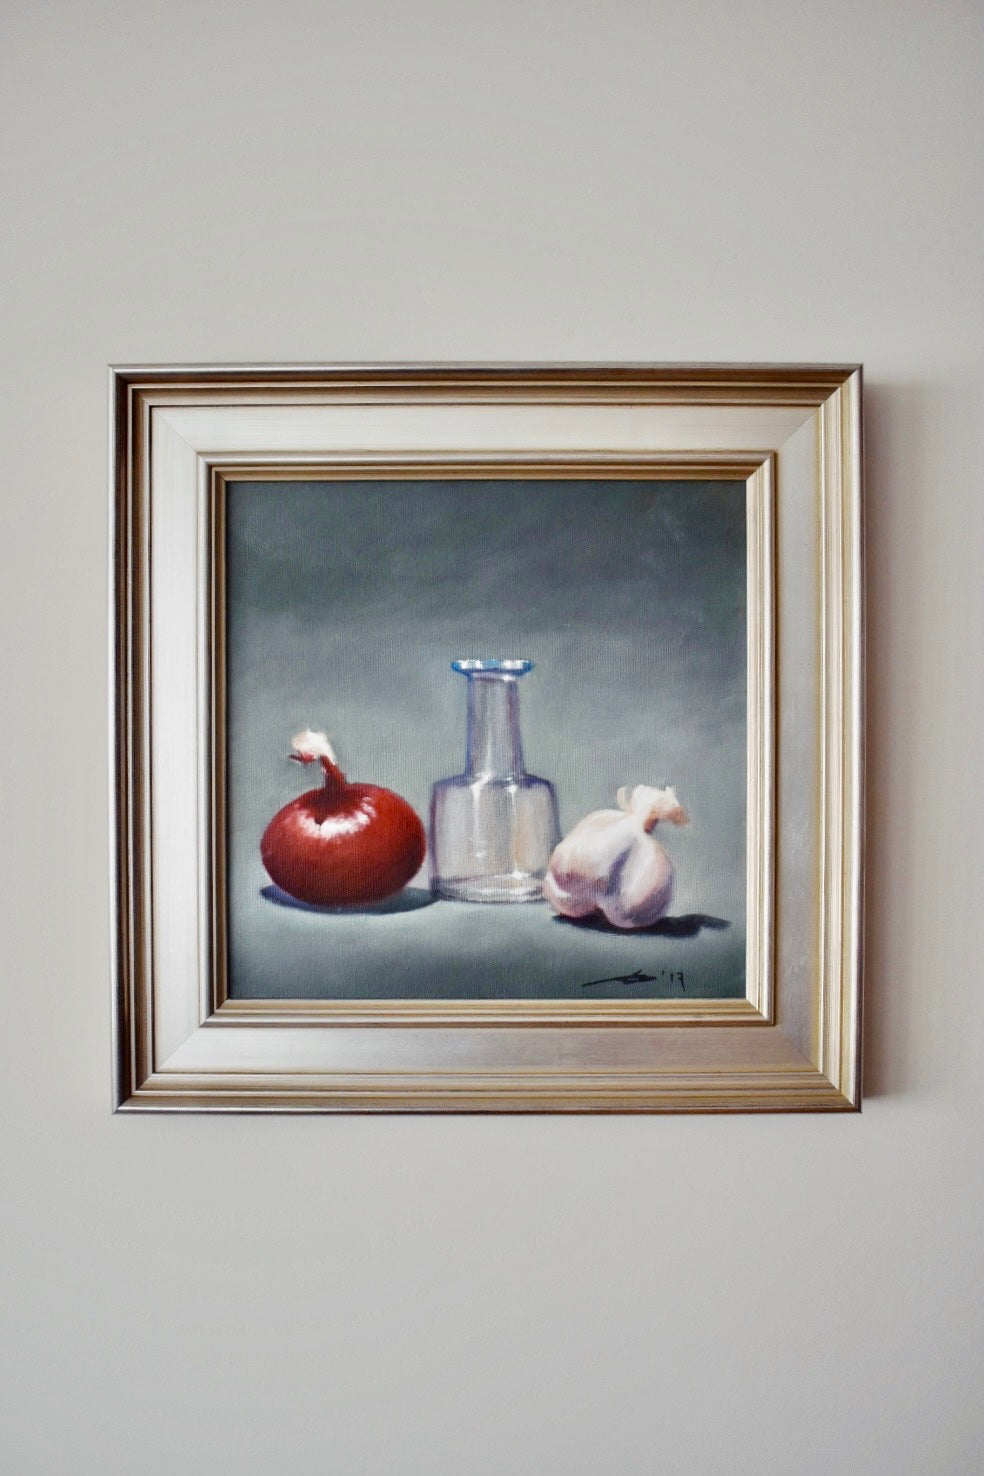 Still Life With Onion In Frame George Geisler Art